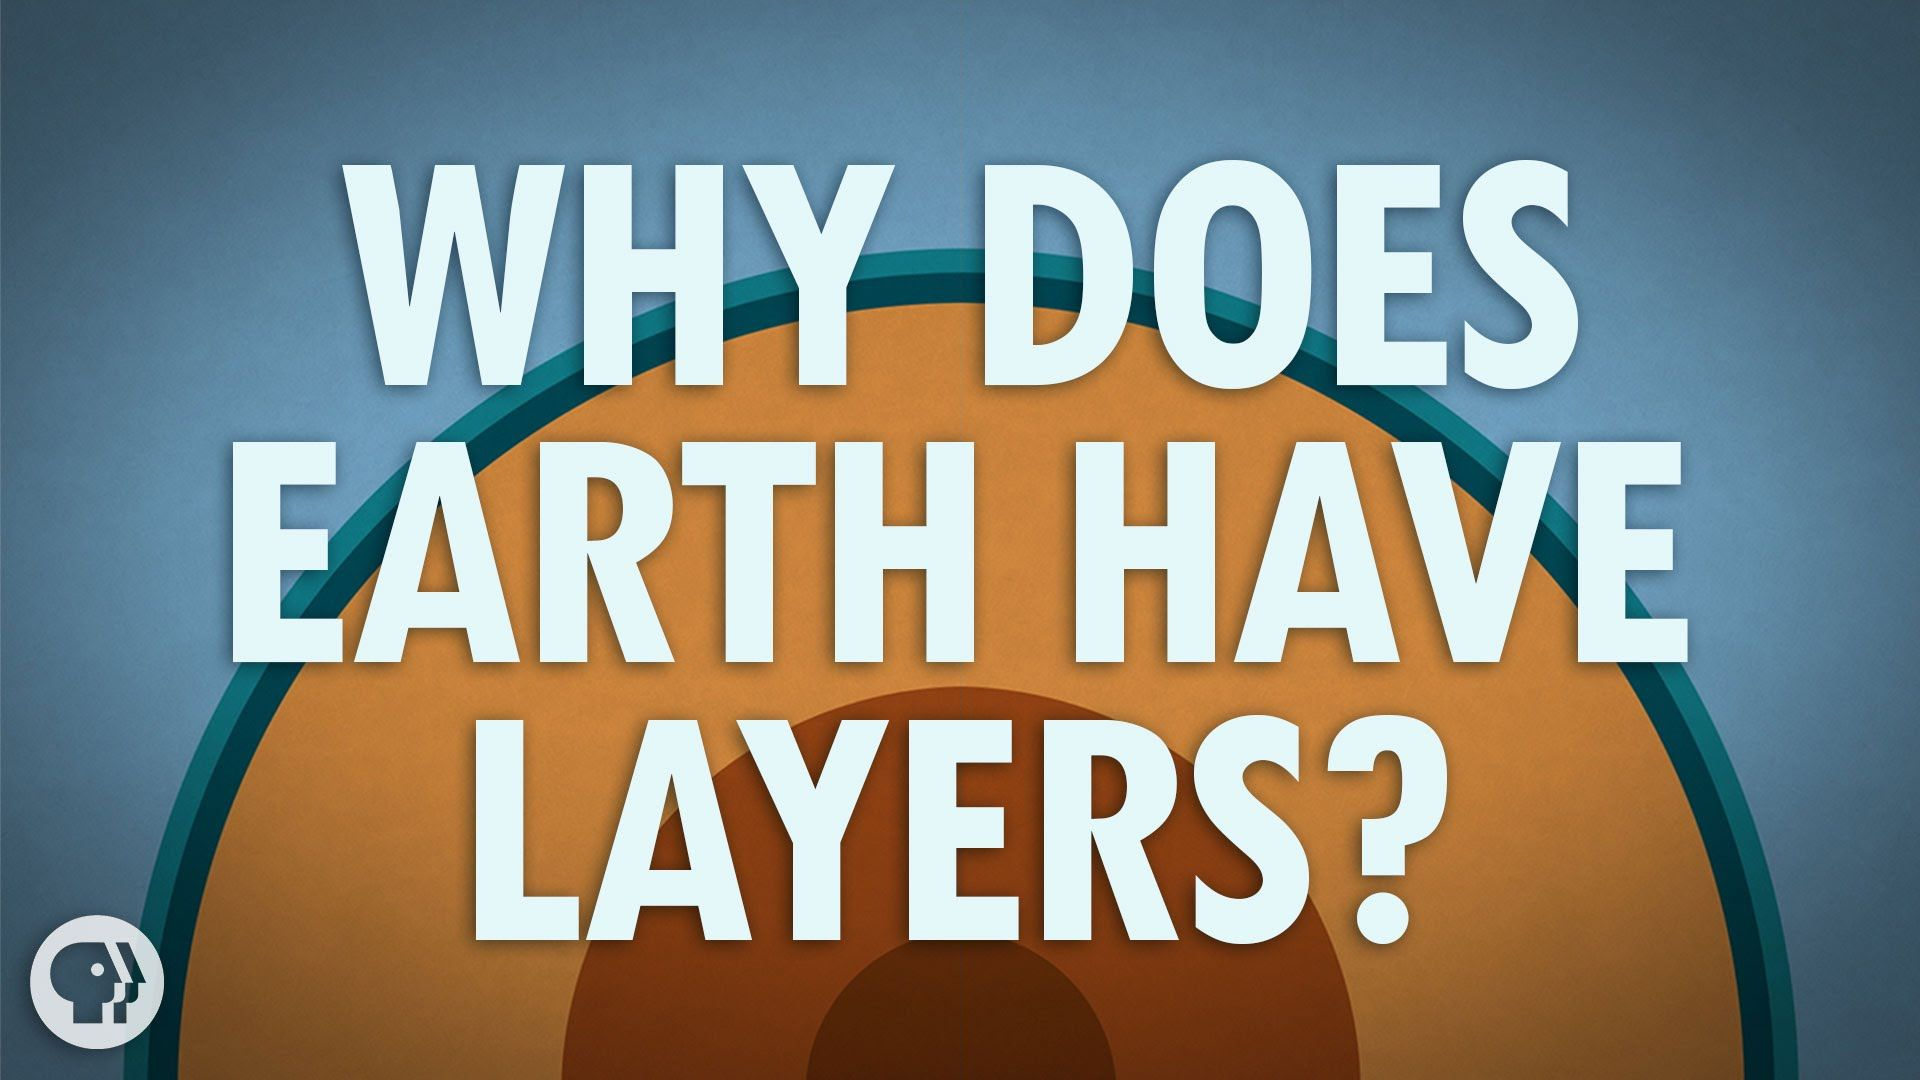 Why Does The Earth Have Layers